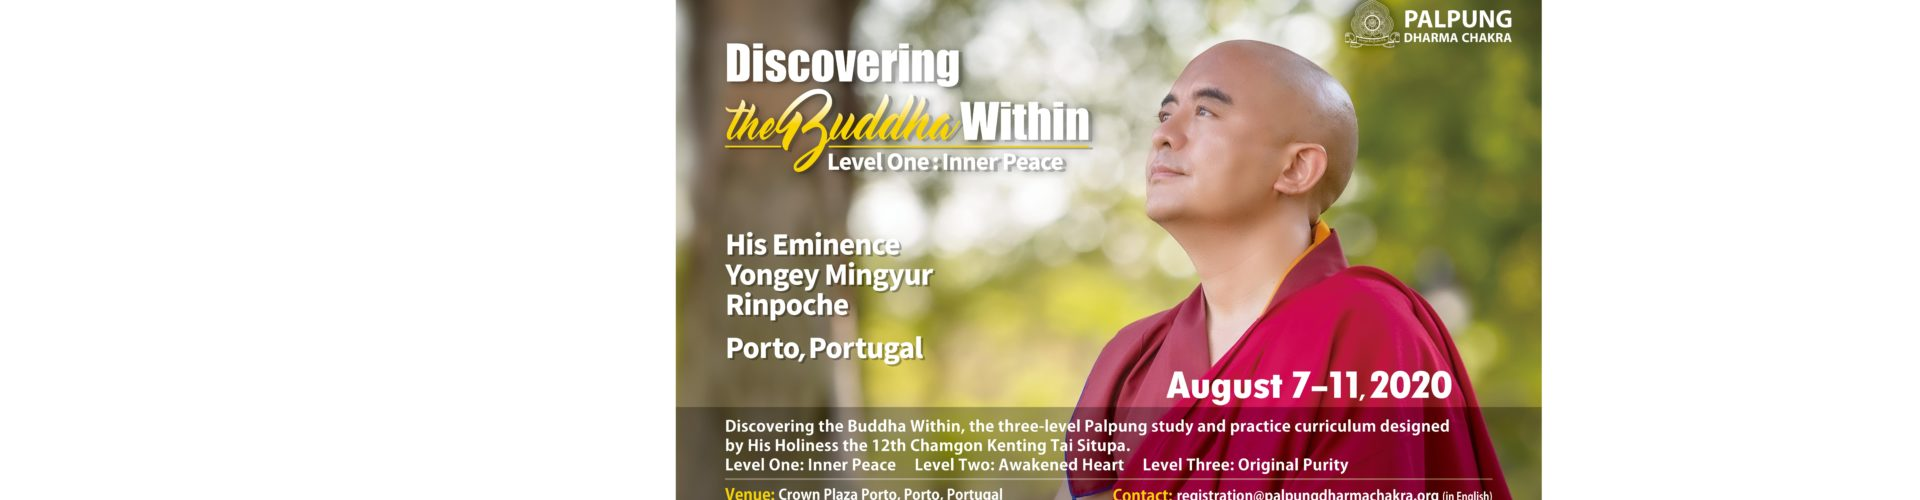 Discovering the Buddha Within – Inner Peace – Mingyur Rinpoche